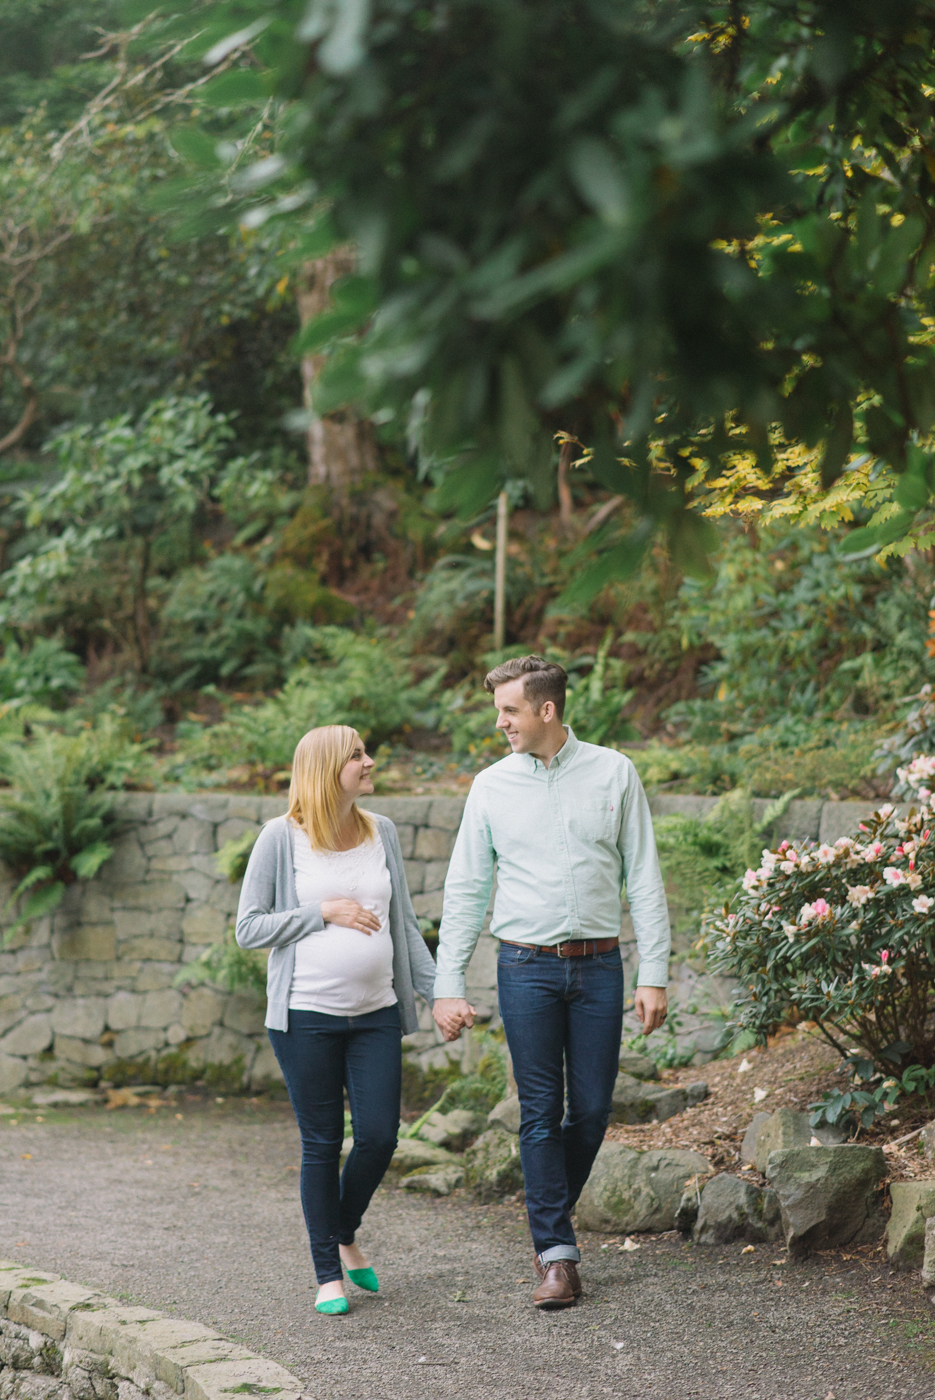 portland-oregon-maternity-photography-pregnancy-crystal-springs-rhododendron-garden-walking-sweet-romantic-shelley-marie-photo-1